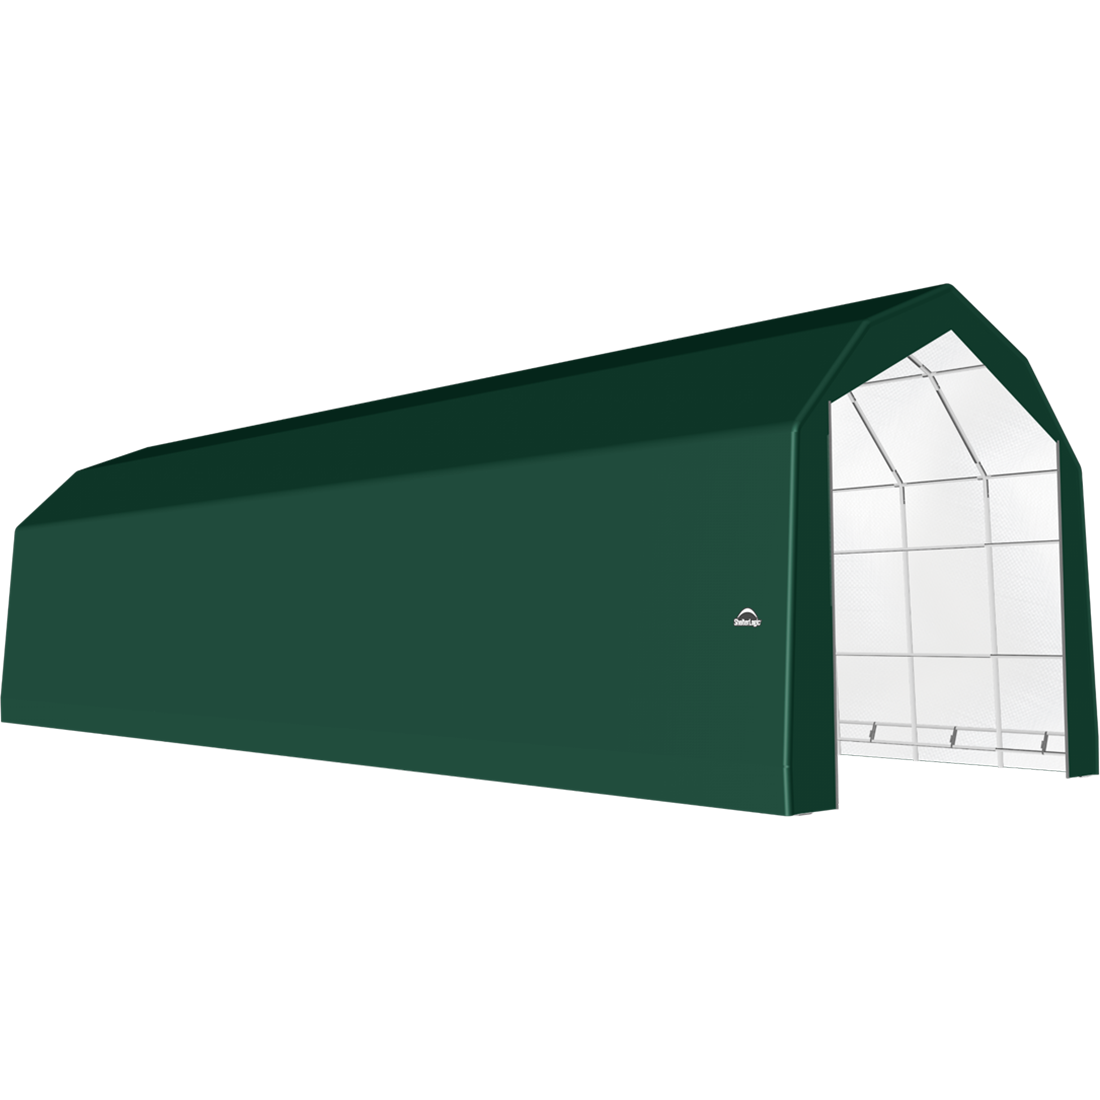 SP Barn 20X68X18 Green 14 oz PE Shelter